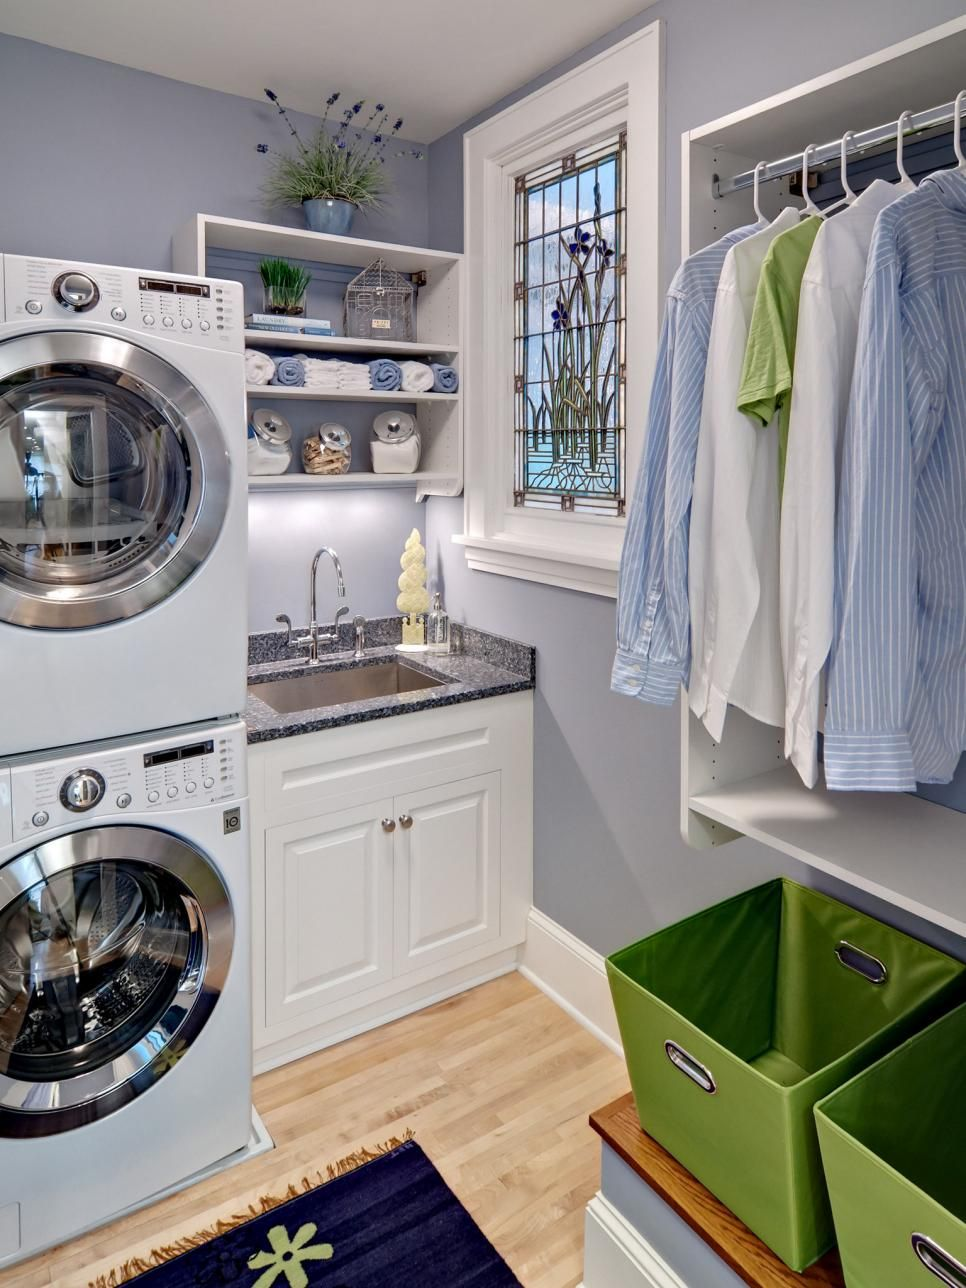 8 Tidy Laundry Rooms That Make Washday Fun Awesome Design